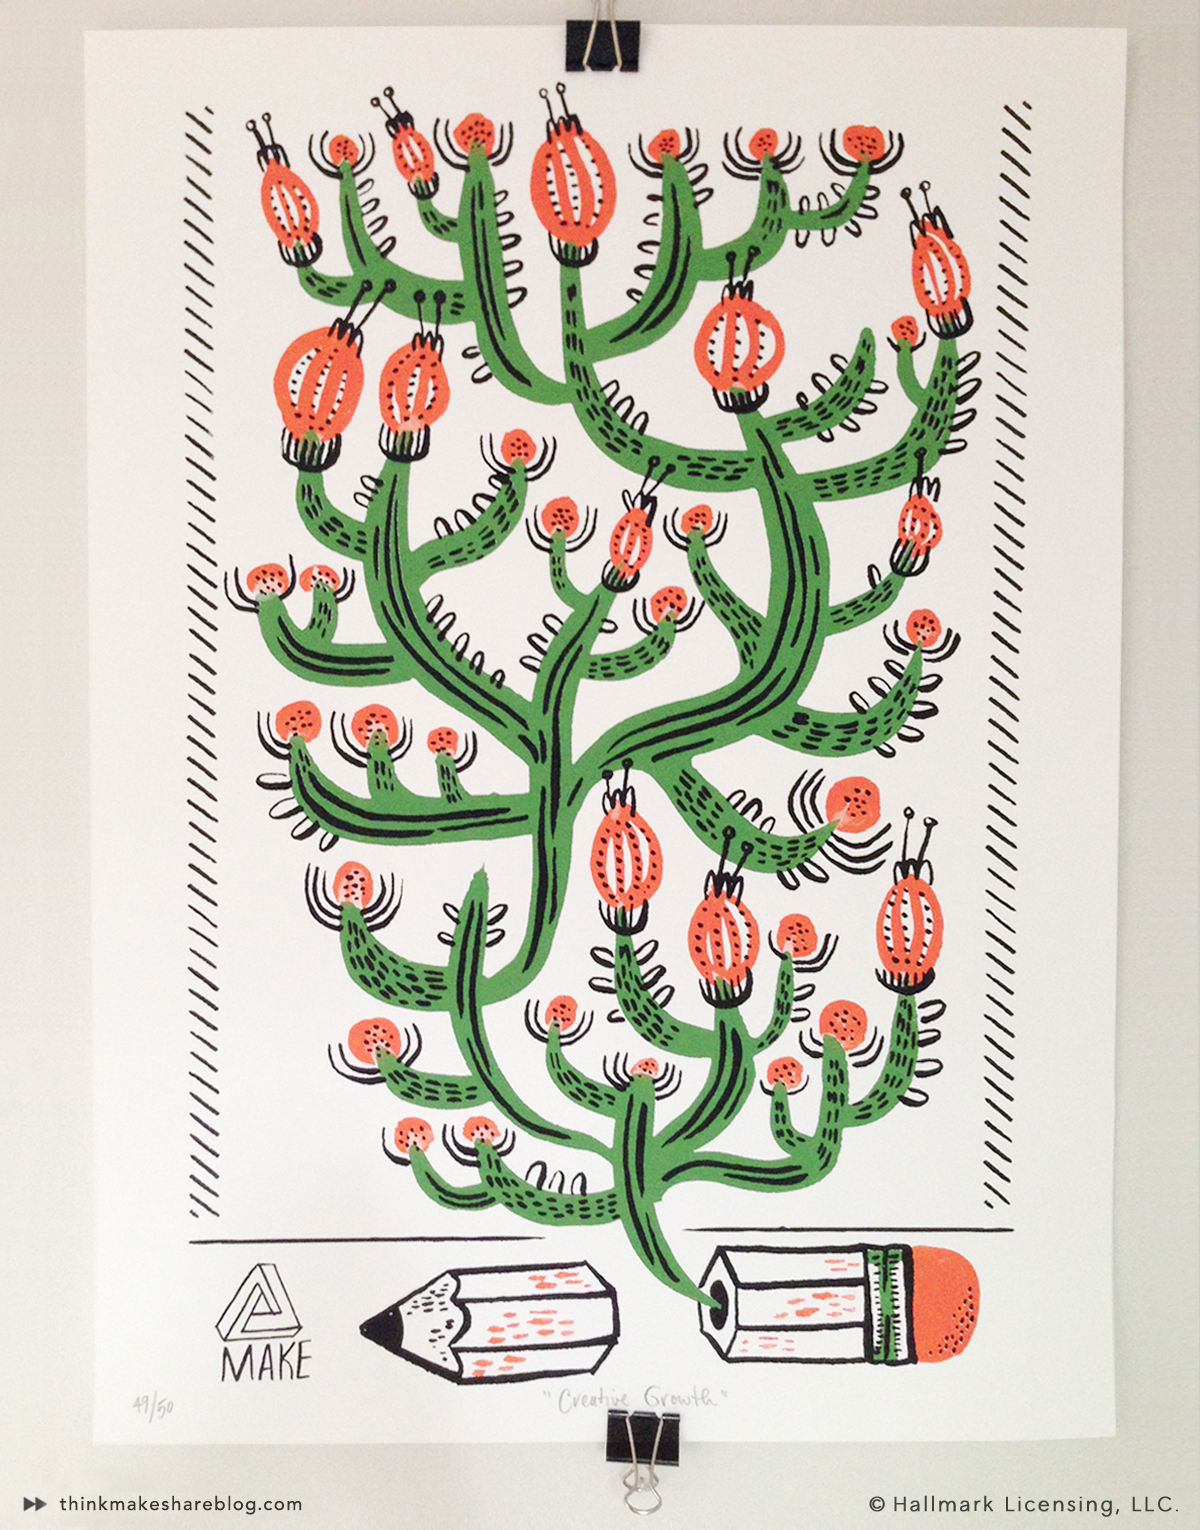 5 Points Cactus Print by Allie Rotenberg | thinkmakeshareblog.com